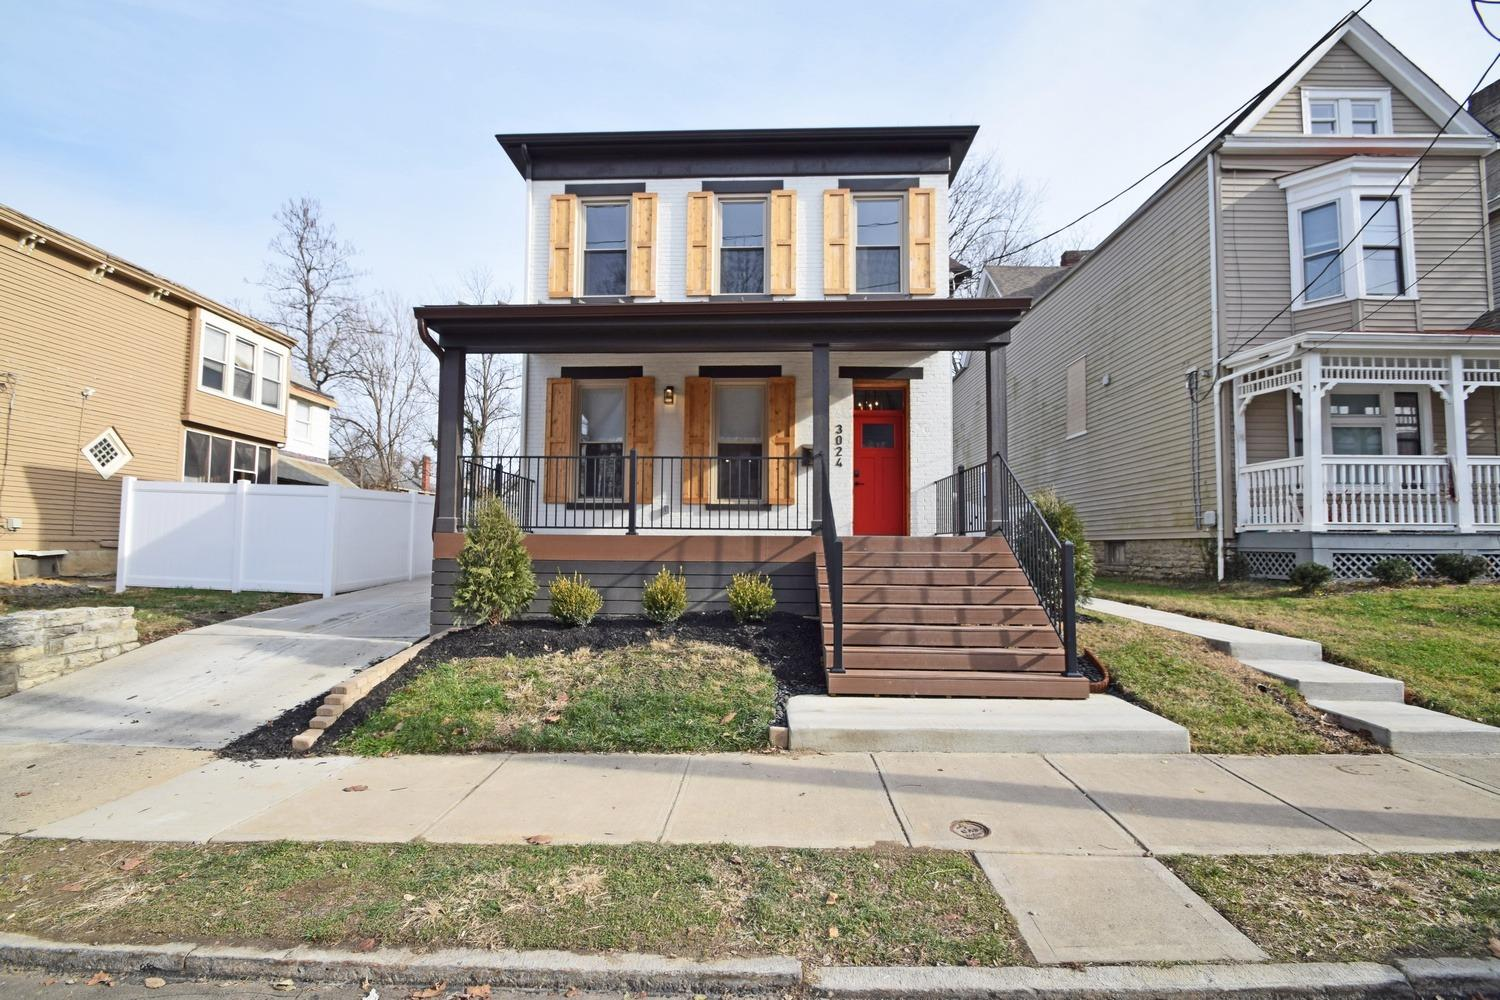 Photo 1 for 3024 Hackberry St Evanston, OH 45206